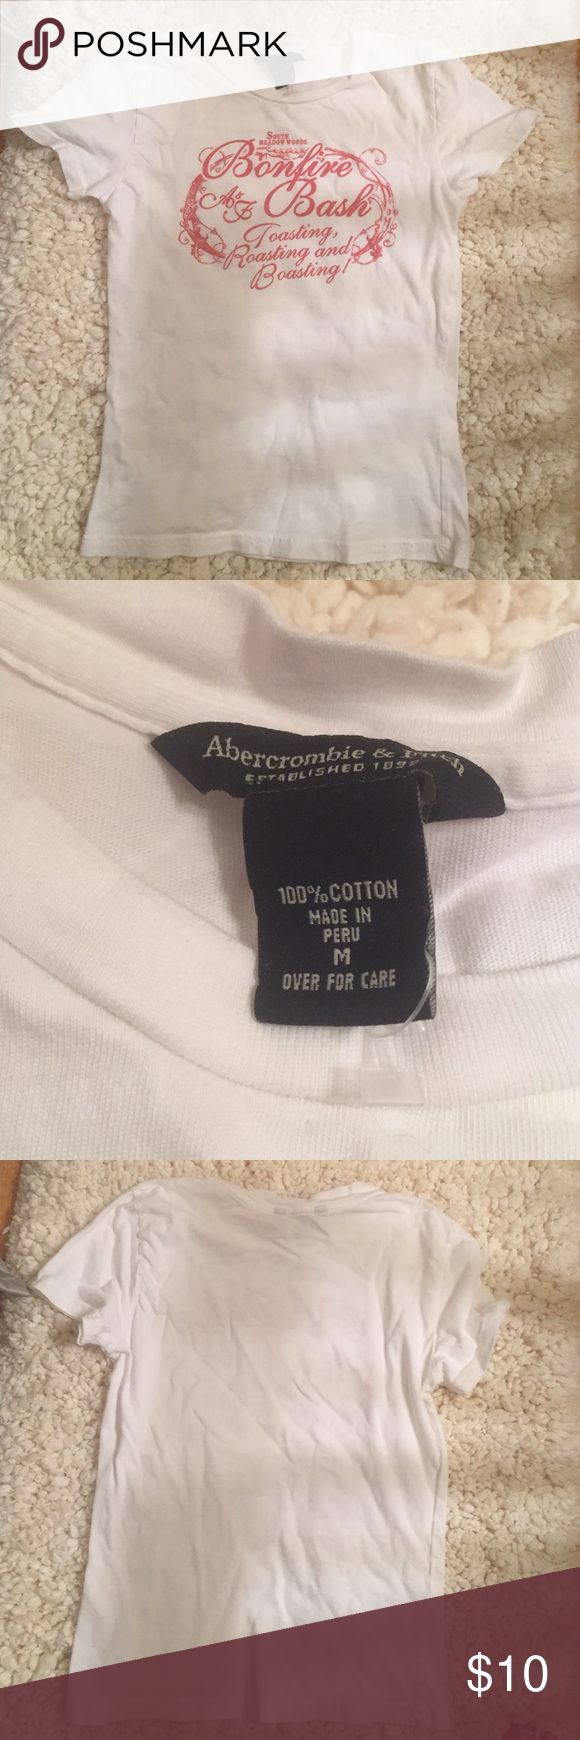 Cute women's Abercrombie and Fitch t-shirt... Never been worn in excellent condition Abercrombie & Fitch Tops Tees - Short Sleeve